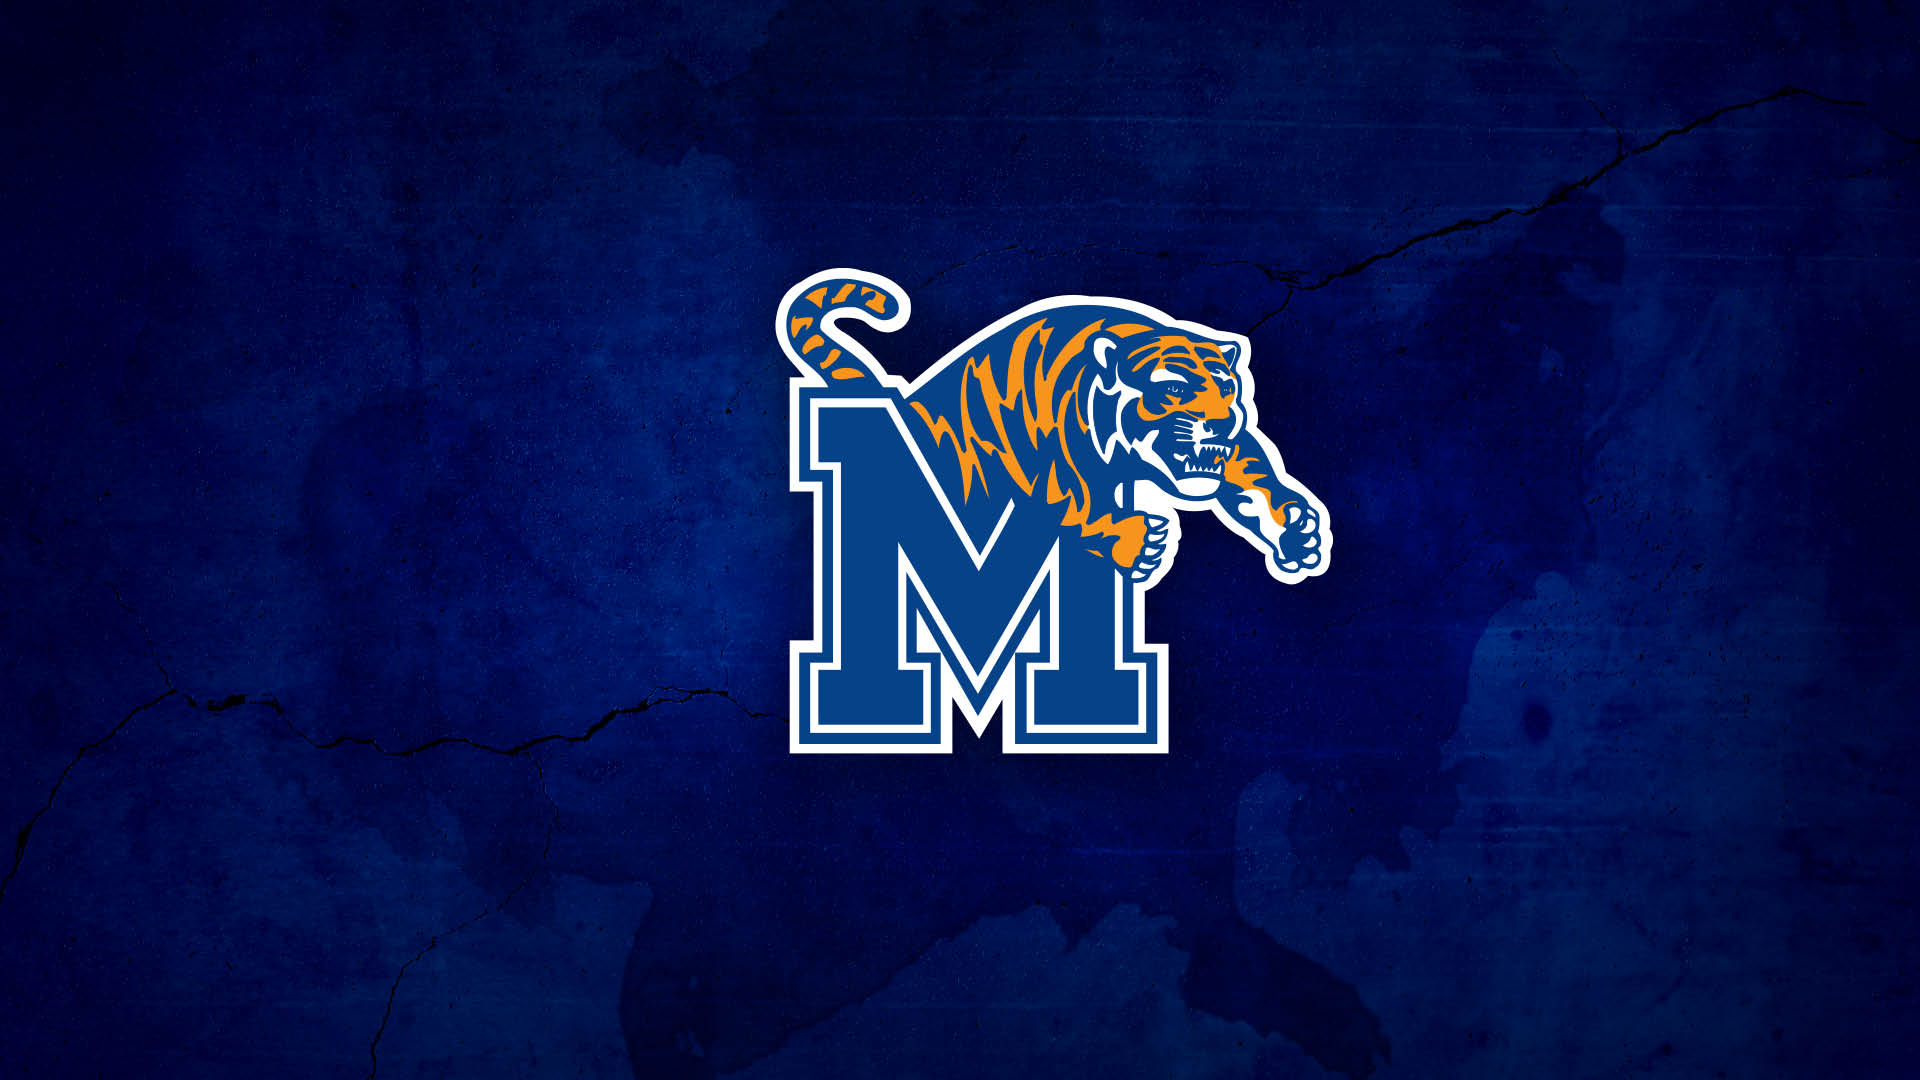 Wallpapers Screensavers Marketing And Communication The University Of Memphis